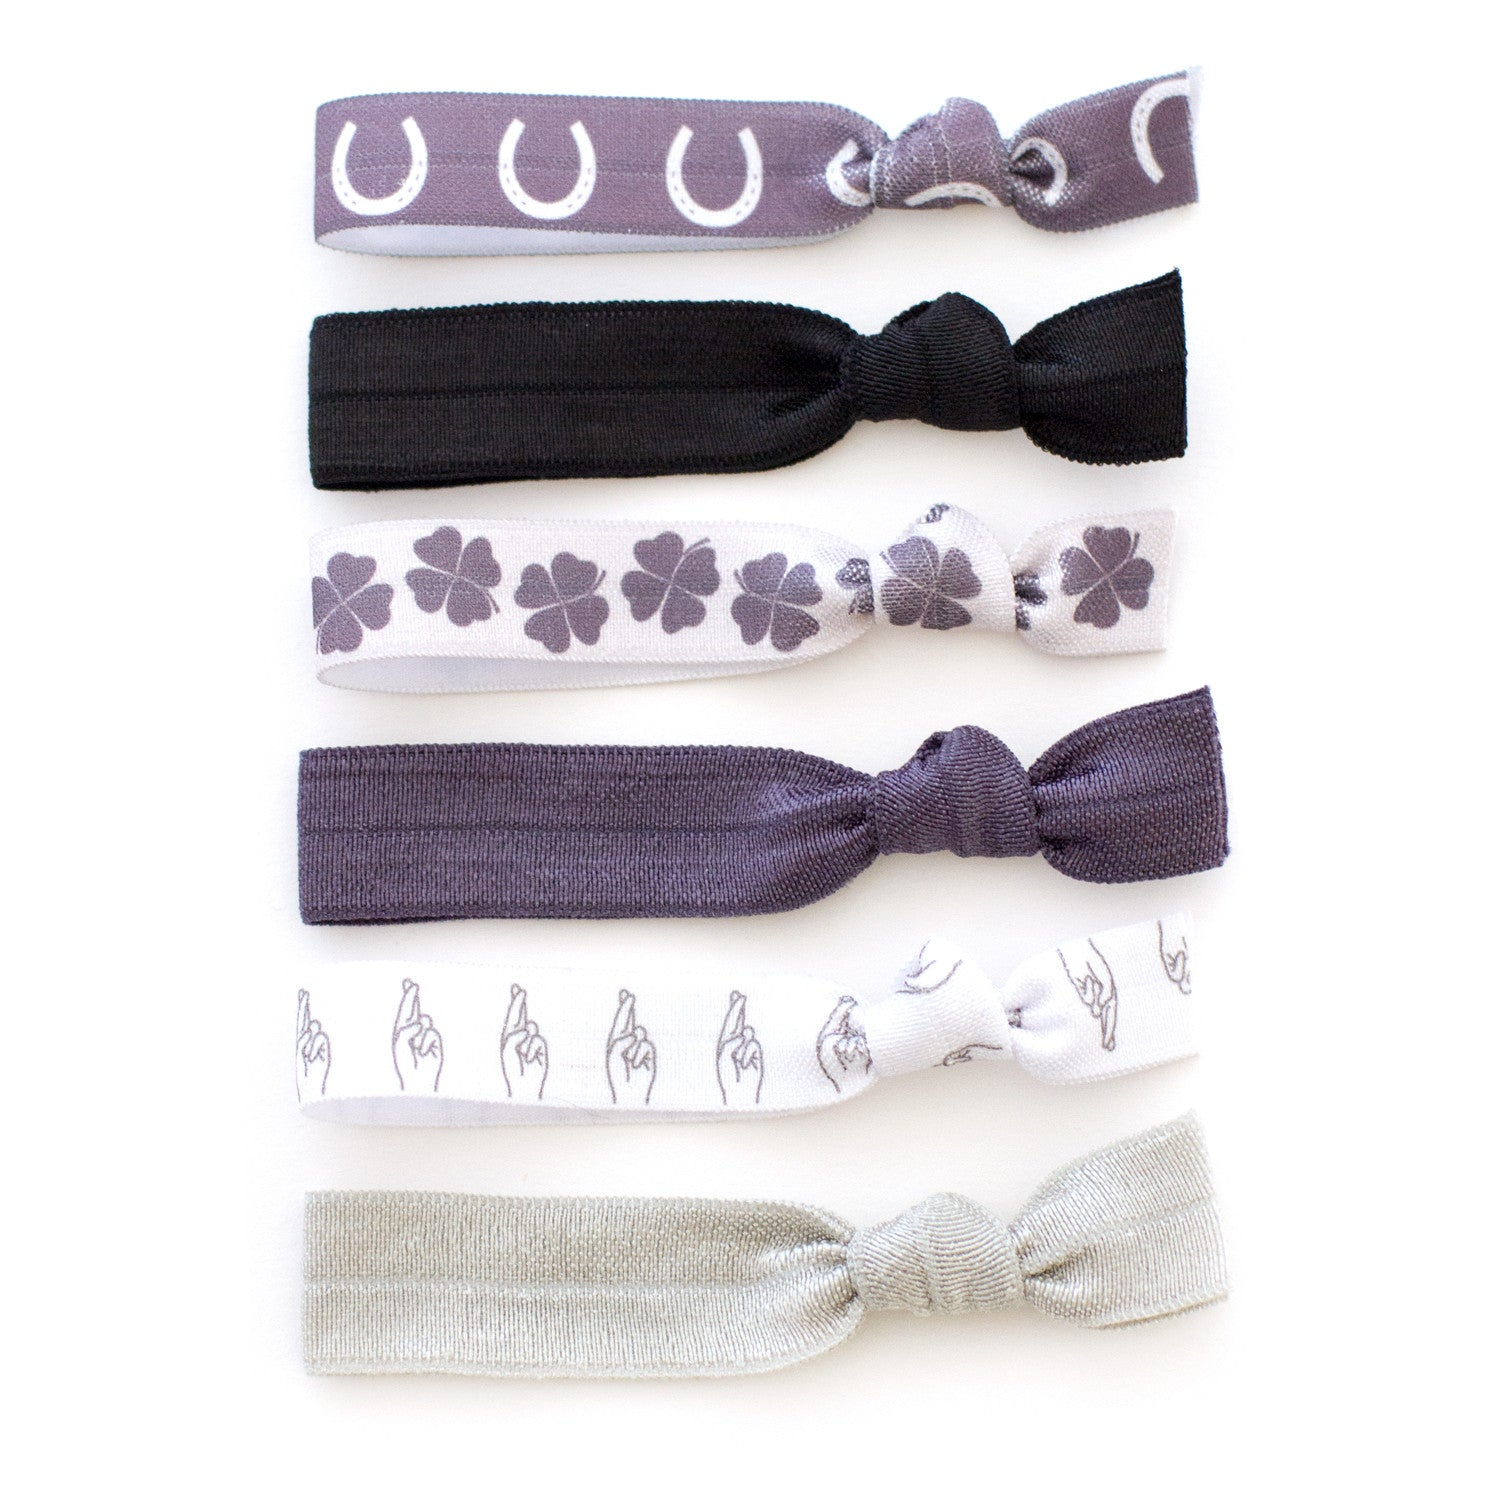 good luck symbol hair tie package by mane message and style stock - horseshoe four leaf clover fingers crossed